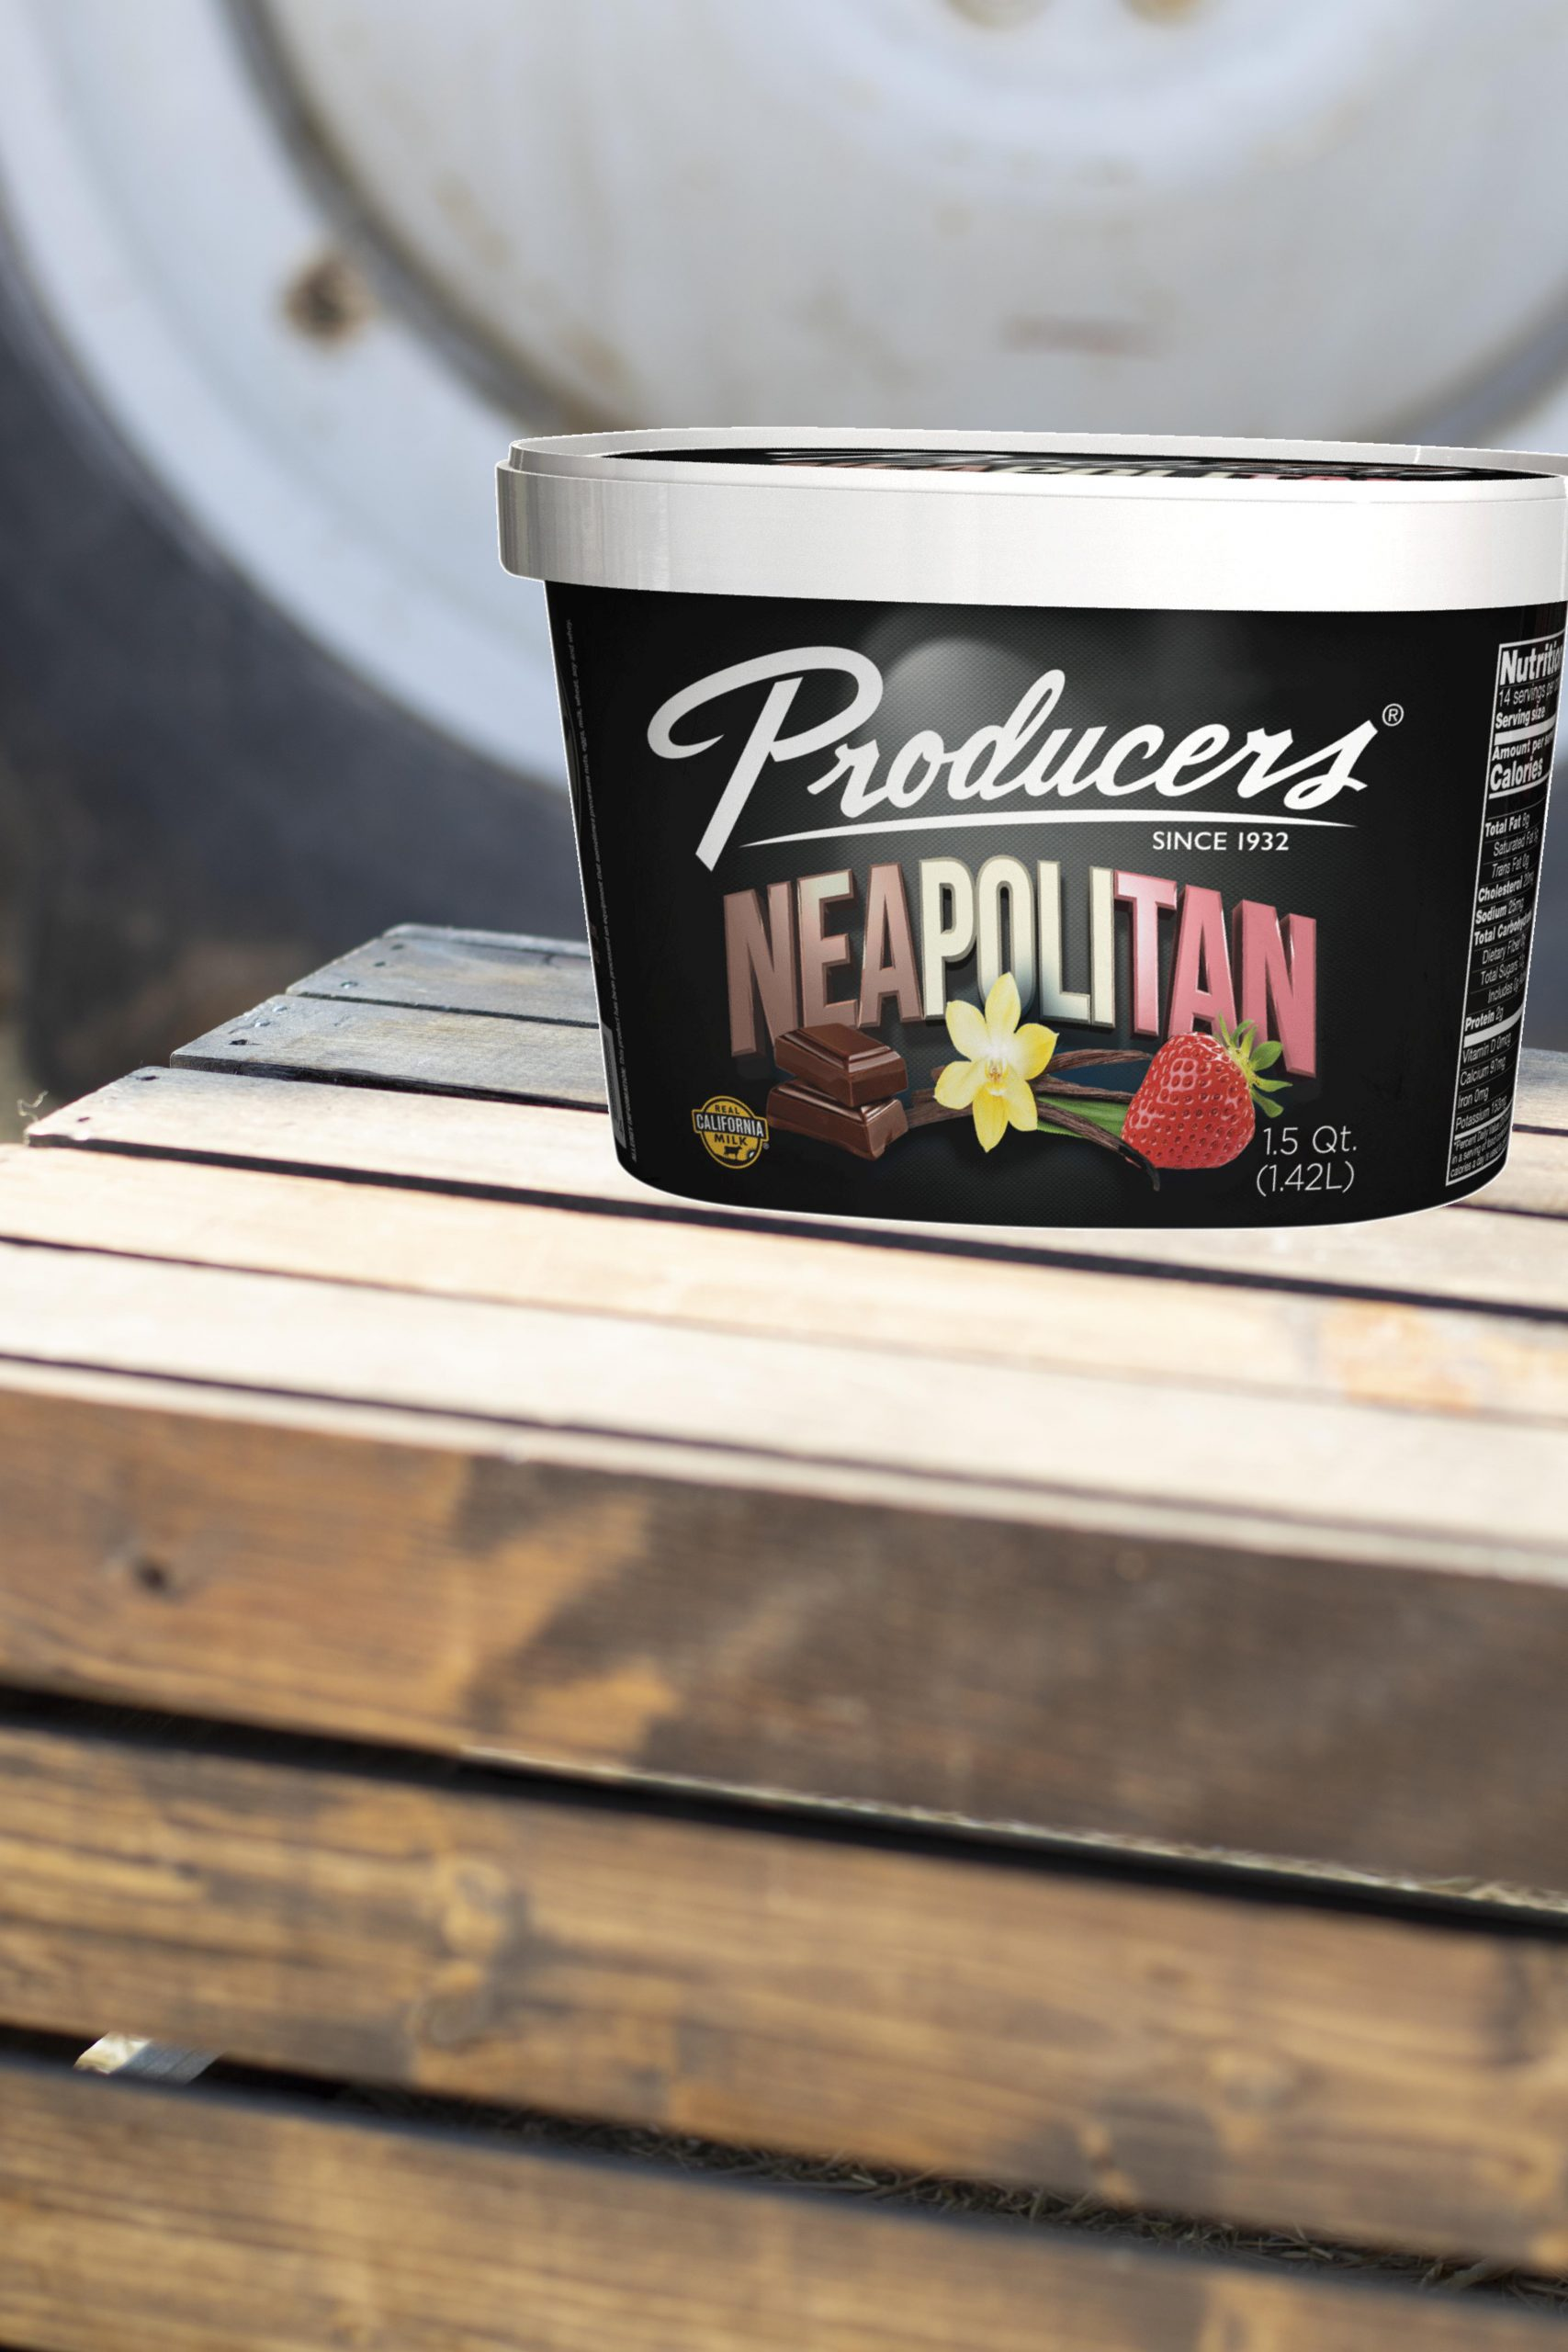 Neapolitan Producers Ice Cream sitting on wood in front of a tractor.